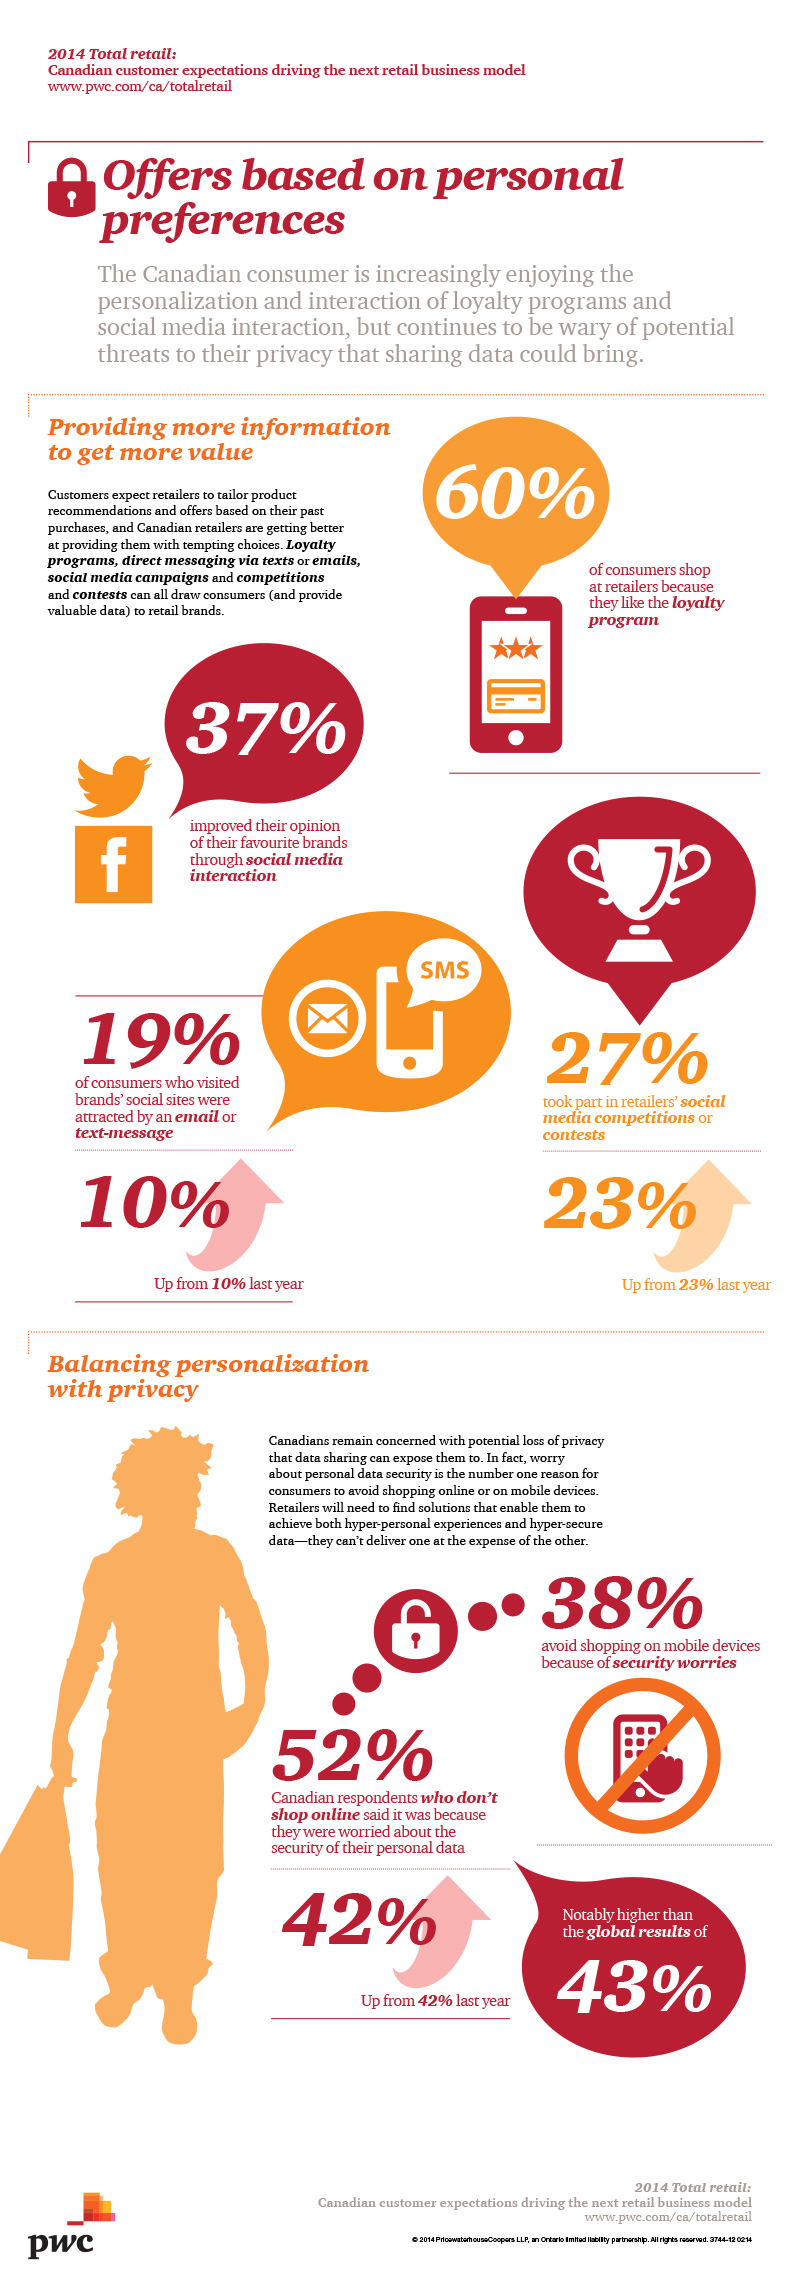 Personalization VS Privacy for Canadian Consumers (Infographic)